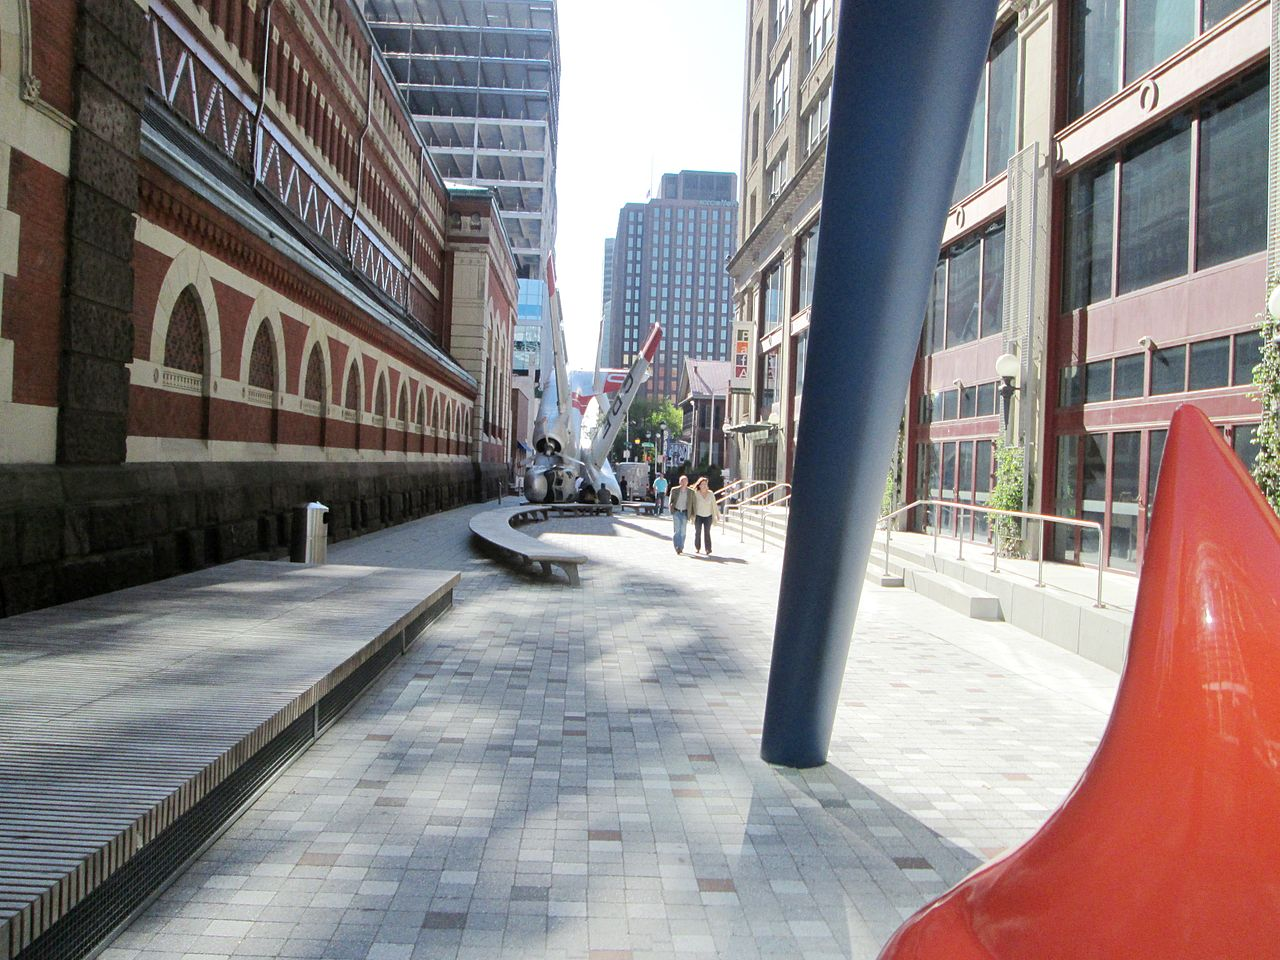 Lenfest Plaza, situated between the Furness-Hewitt Building and the Hamilton Building, is used as an exhibit space for outdoor sculptures.